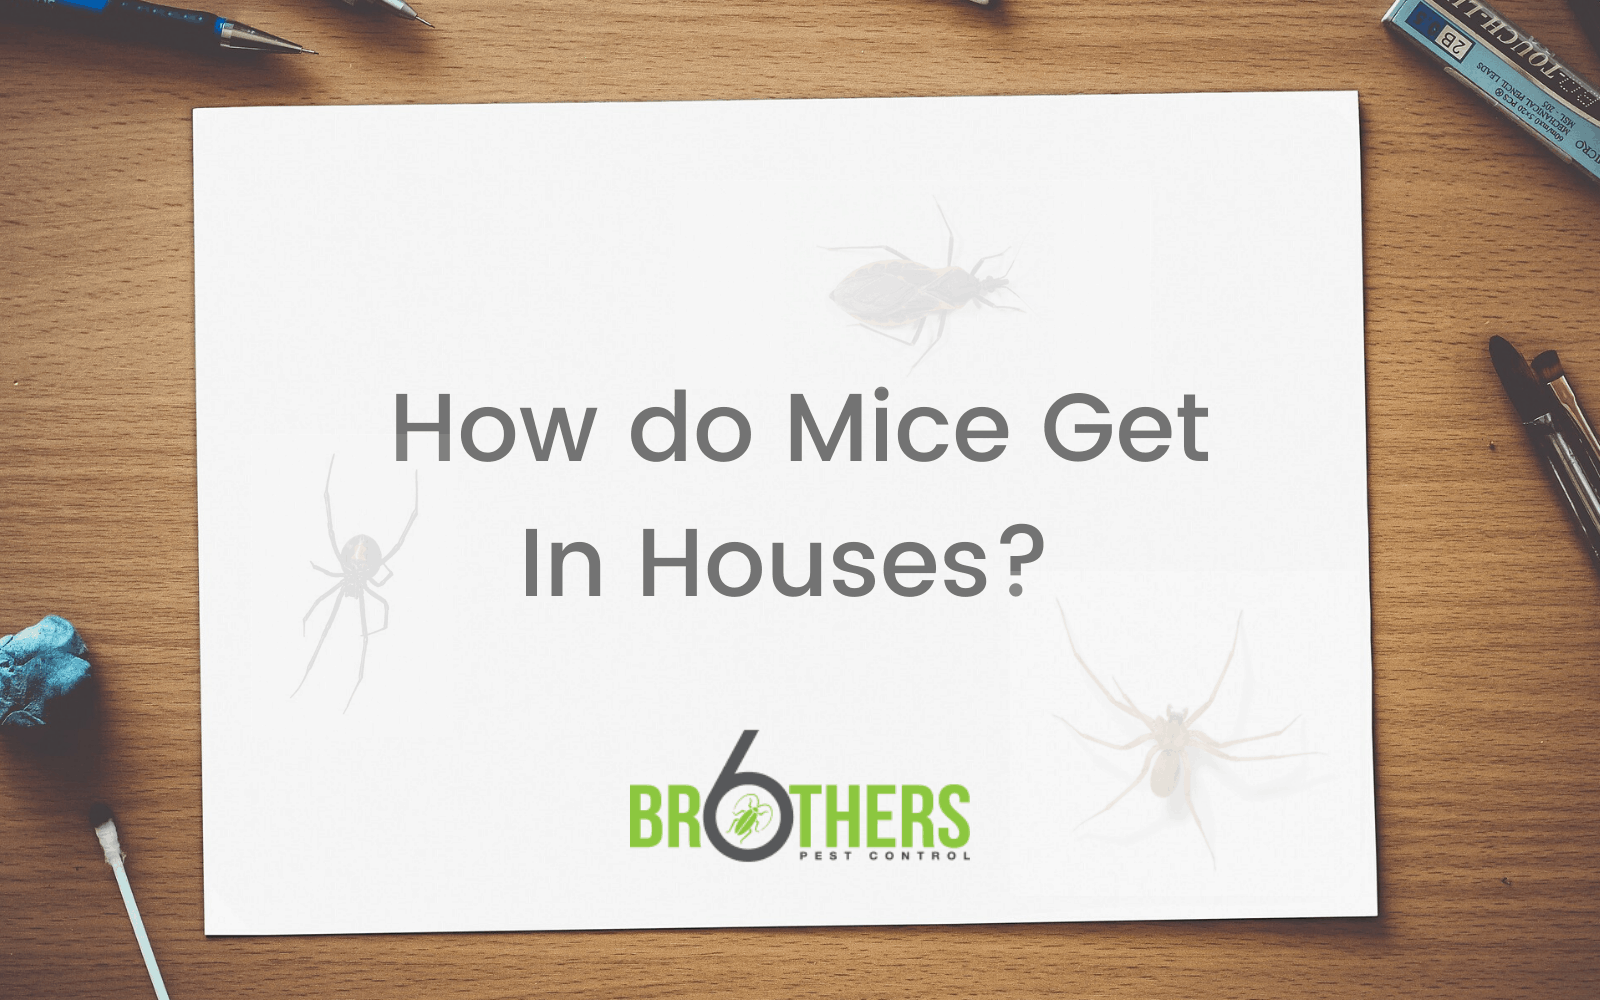 How do Mice Get In Houses?